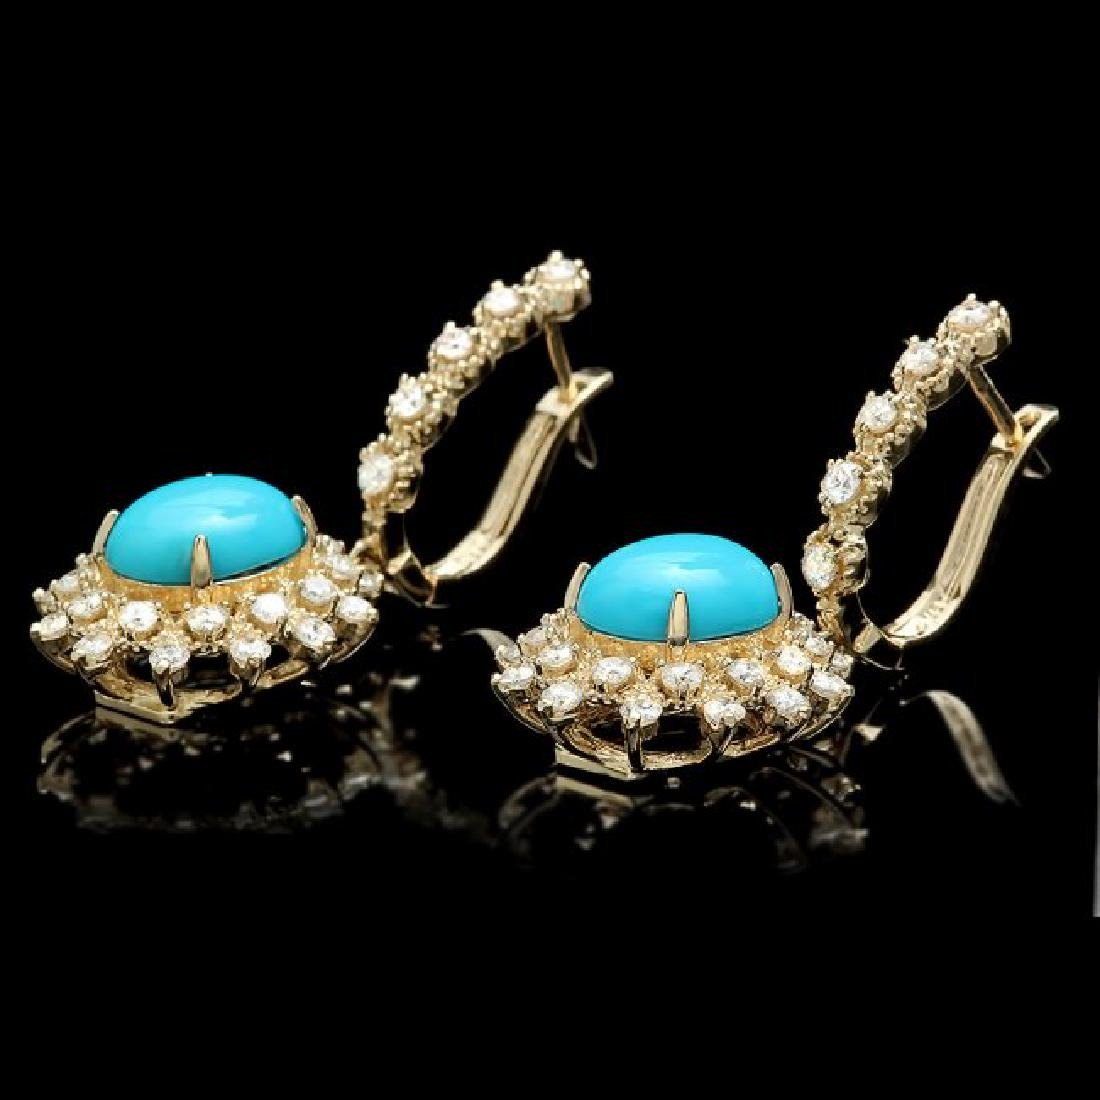 14k Gold 4.00ct Turquoise 1.65ct Diamond Earrings - 2